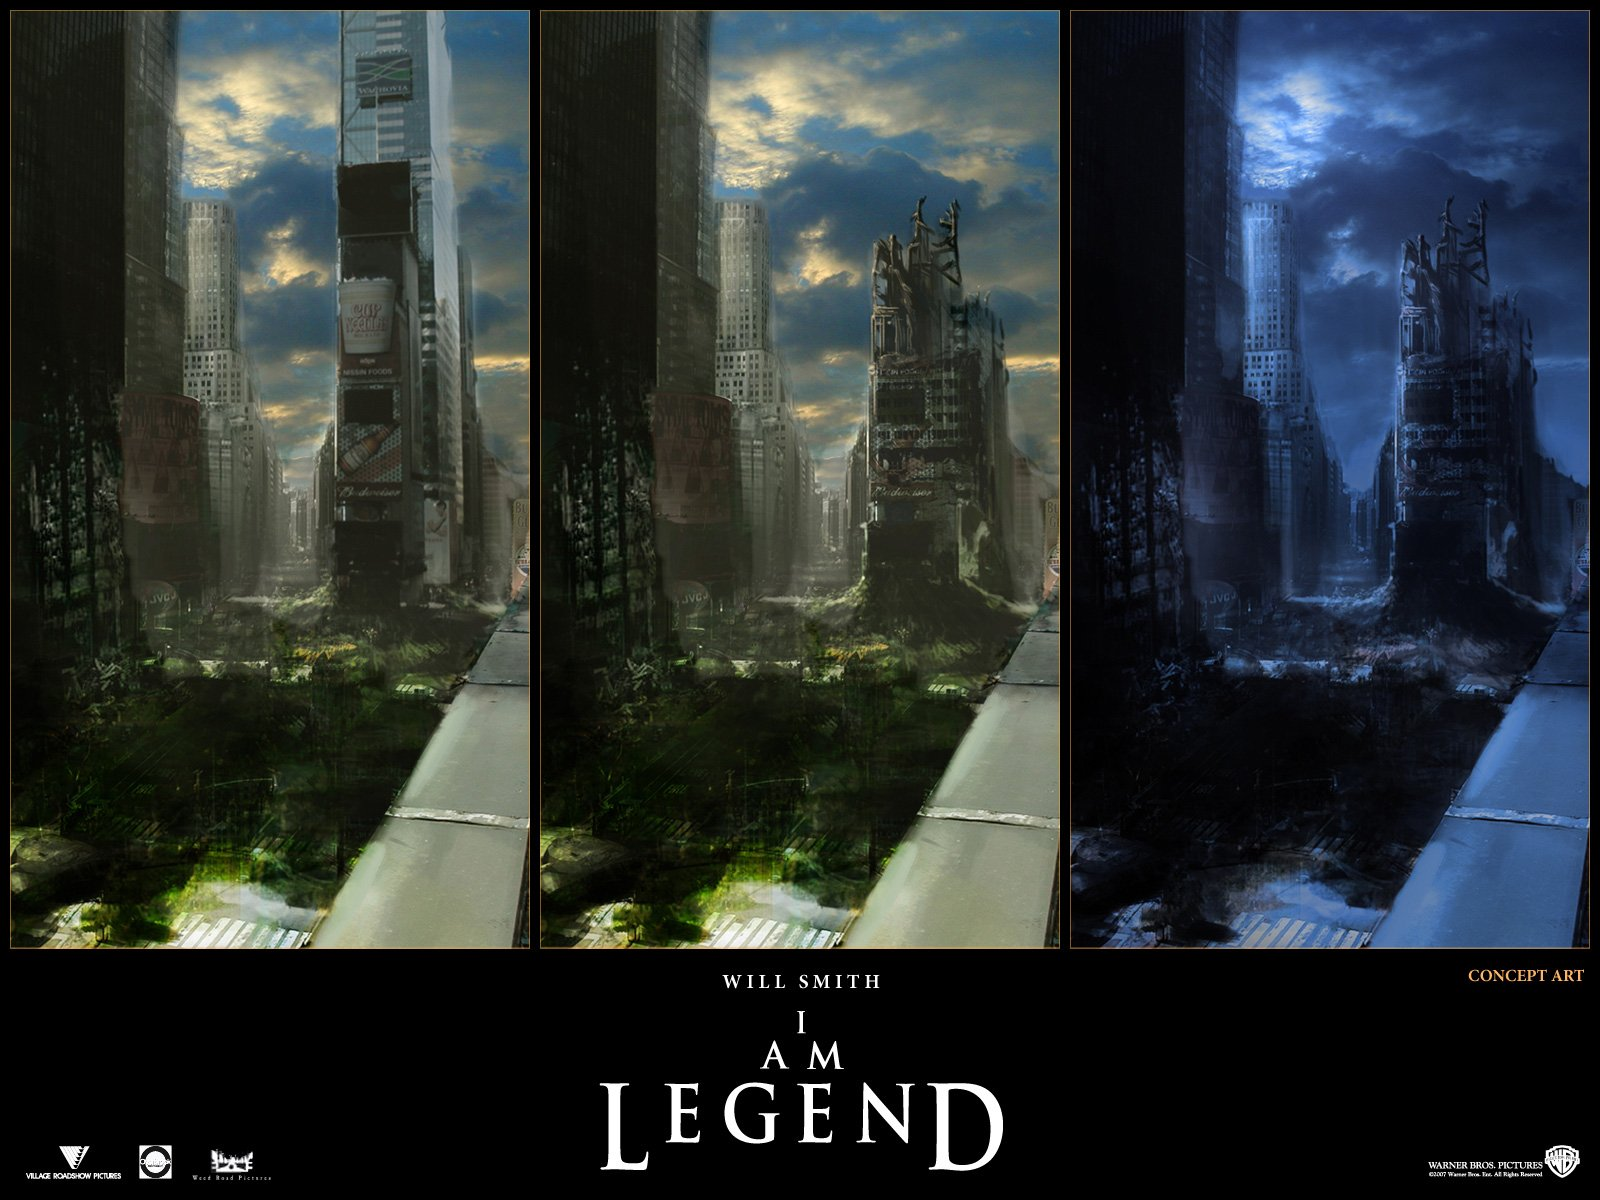 am legend i am legend i am legend i am legend i 1600x1200